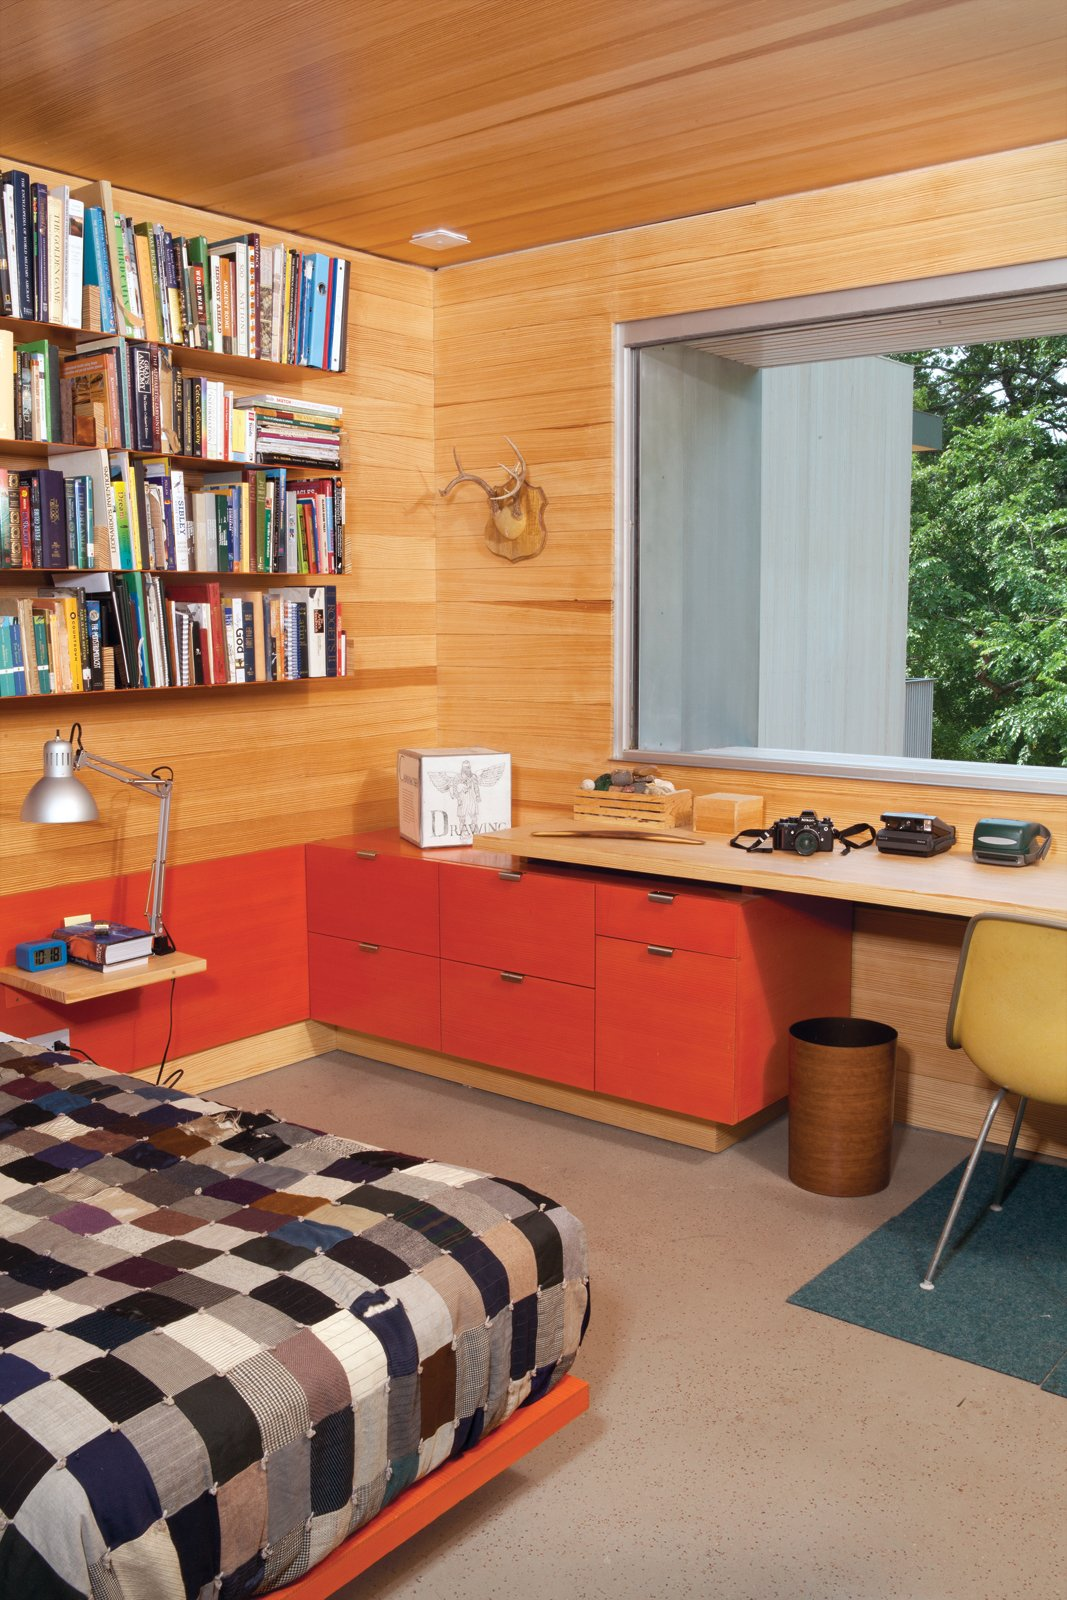 Bedroom, Bed, and Shelves James's bedroom furniture was custom designed by Hatch Workshop.  Photo 1 of 10 in Hillside Mid-Century Home Renovation in Texas